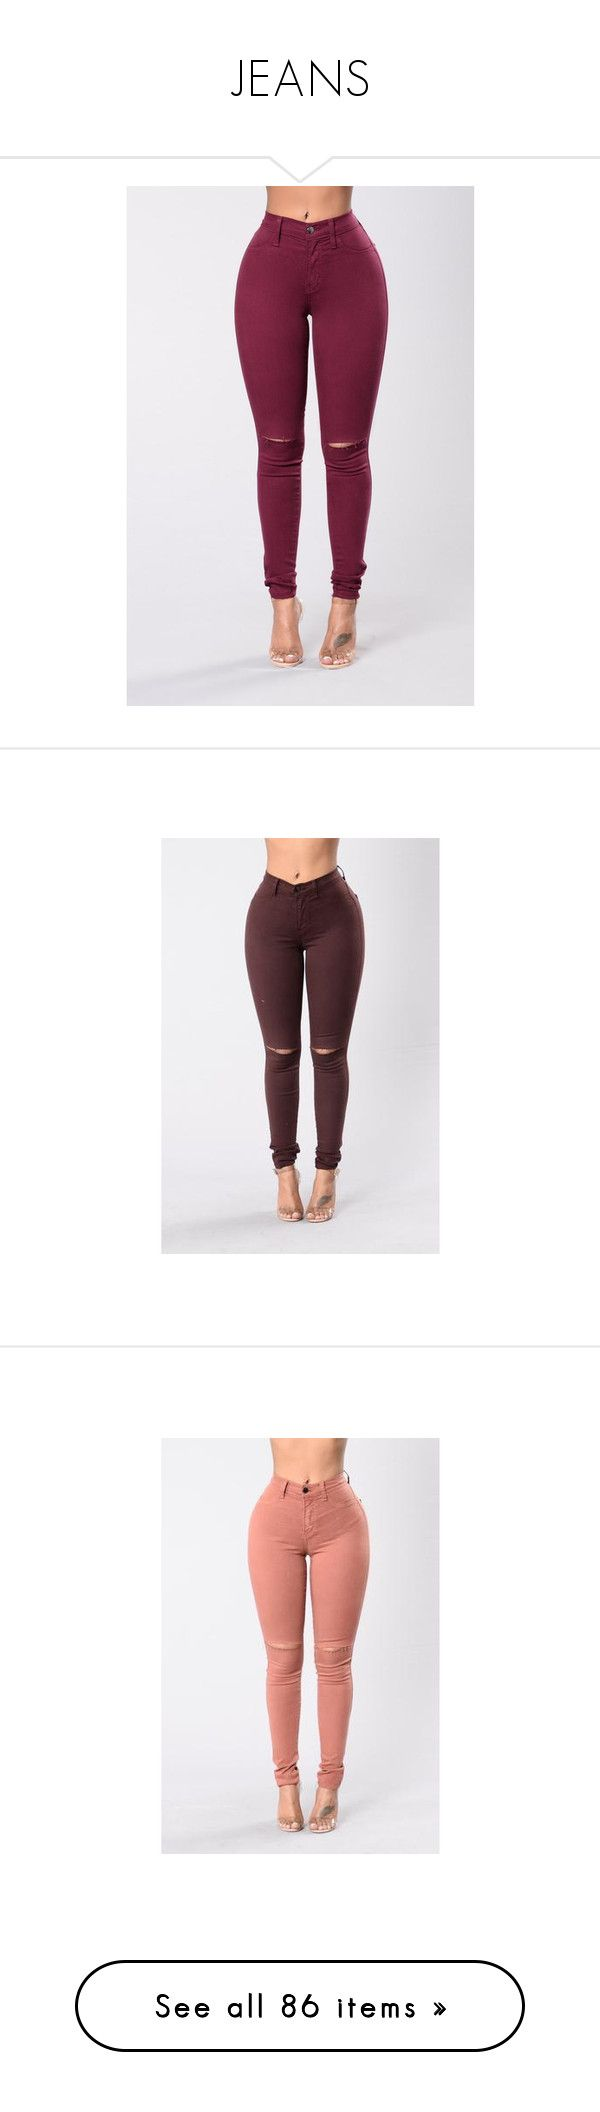 """JEANS"" by thatbytchroman ❤ liked on Polyvore featuring tops, burgundy top, jeans, high waisted ripped skinny jeans, plus size distressed skinny jeans, acid wash skinny jeans, plus size skinny jeans, plus size high waisted skinny jeans, plus size ripped skinny jeans and distressed skinny jeans"